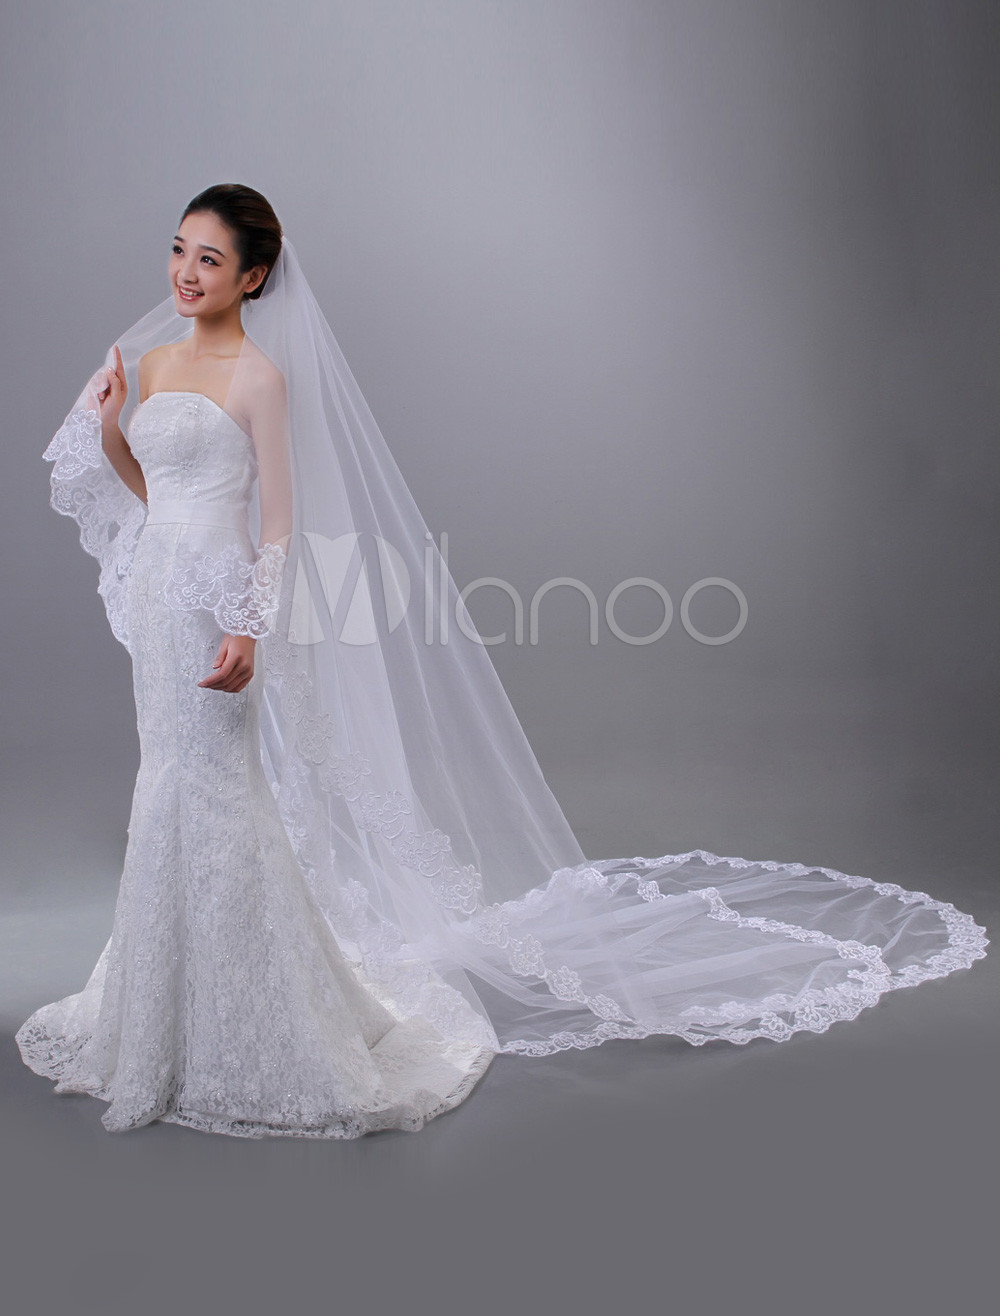 White Two-Tier Embroidery Tulle Oval Wedding Veil